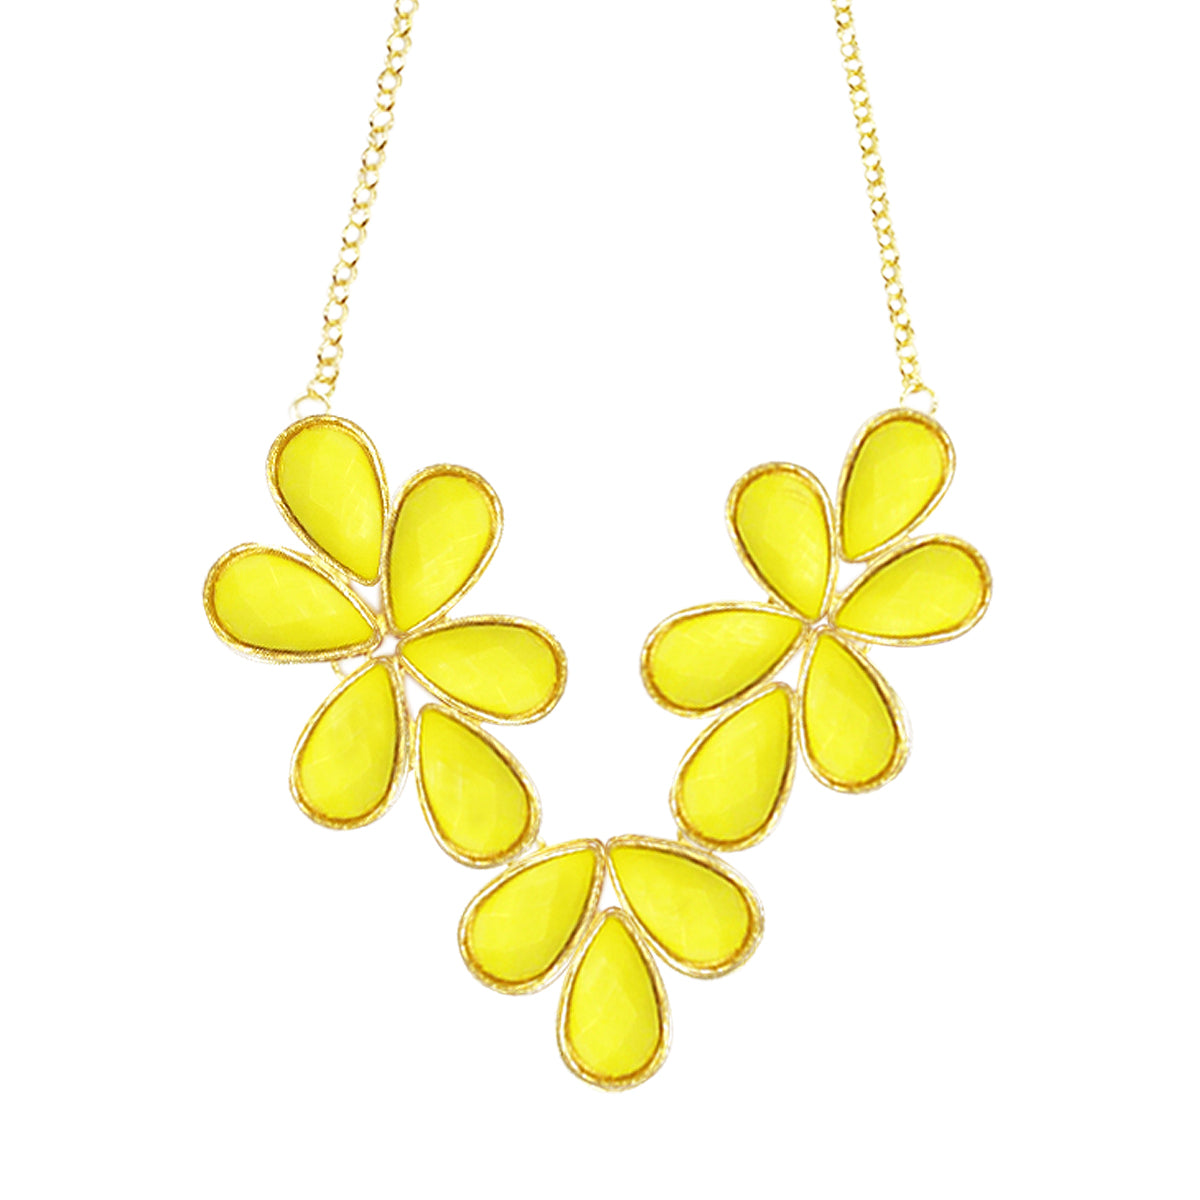 Wrapables Floral Drops Bubble Bib Statement Necklace